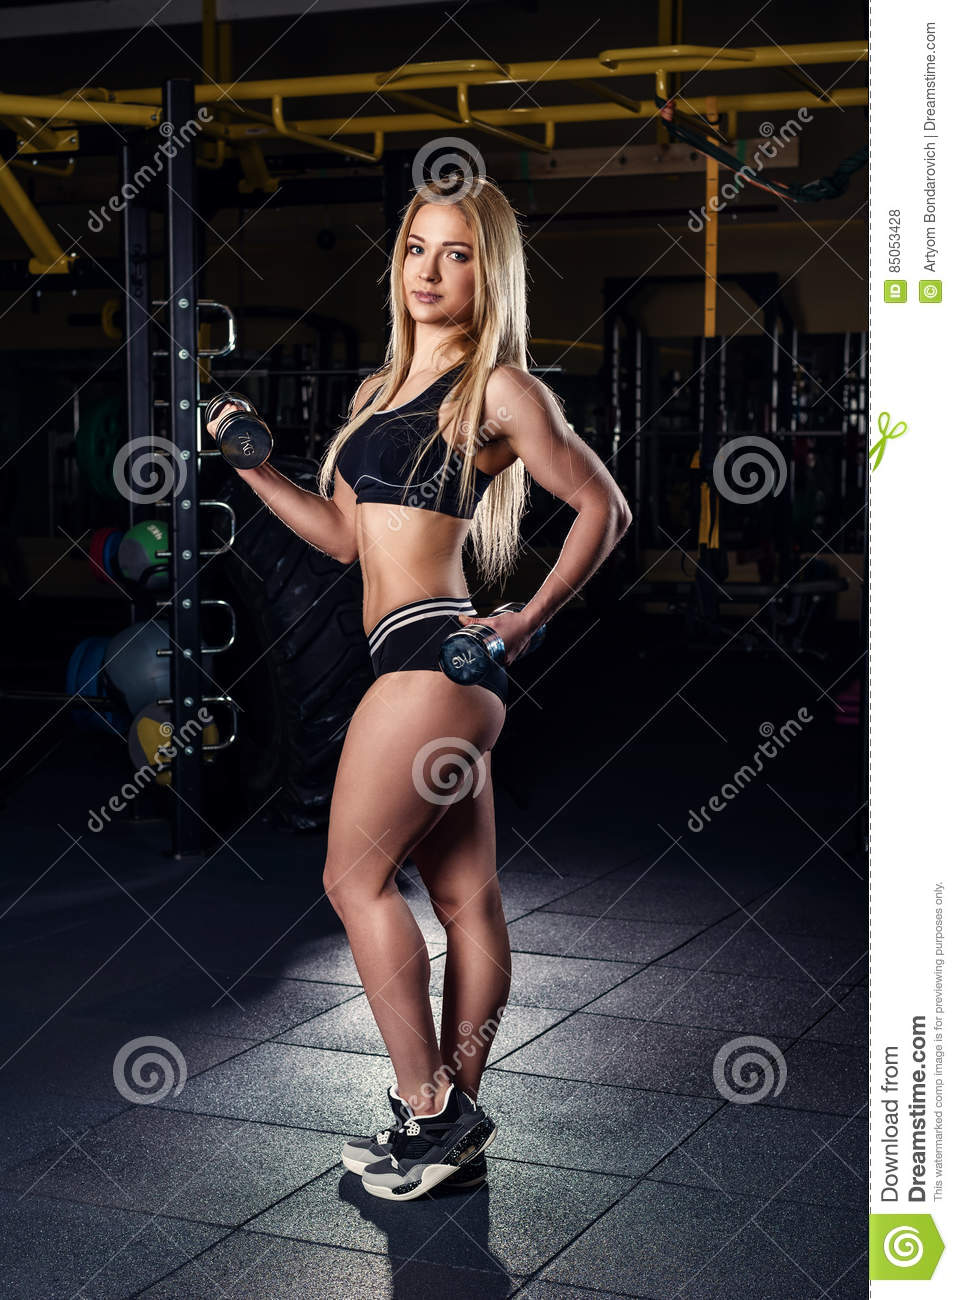 Strong Sporty Woman Bodybuilder With Tanned Body Doing